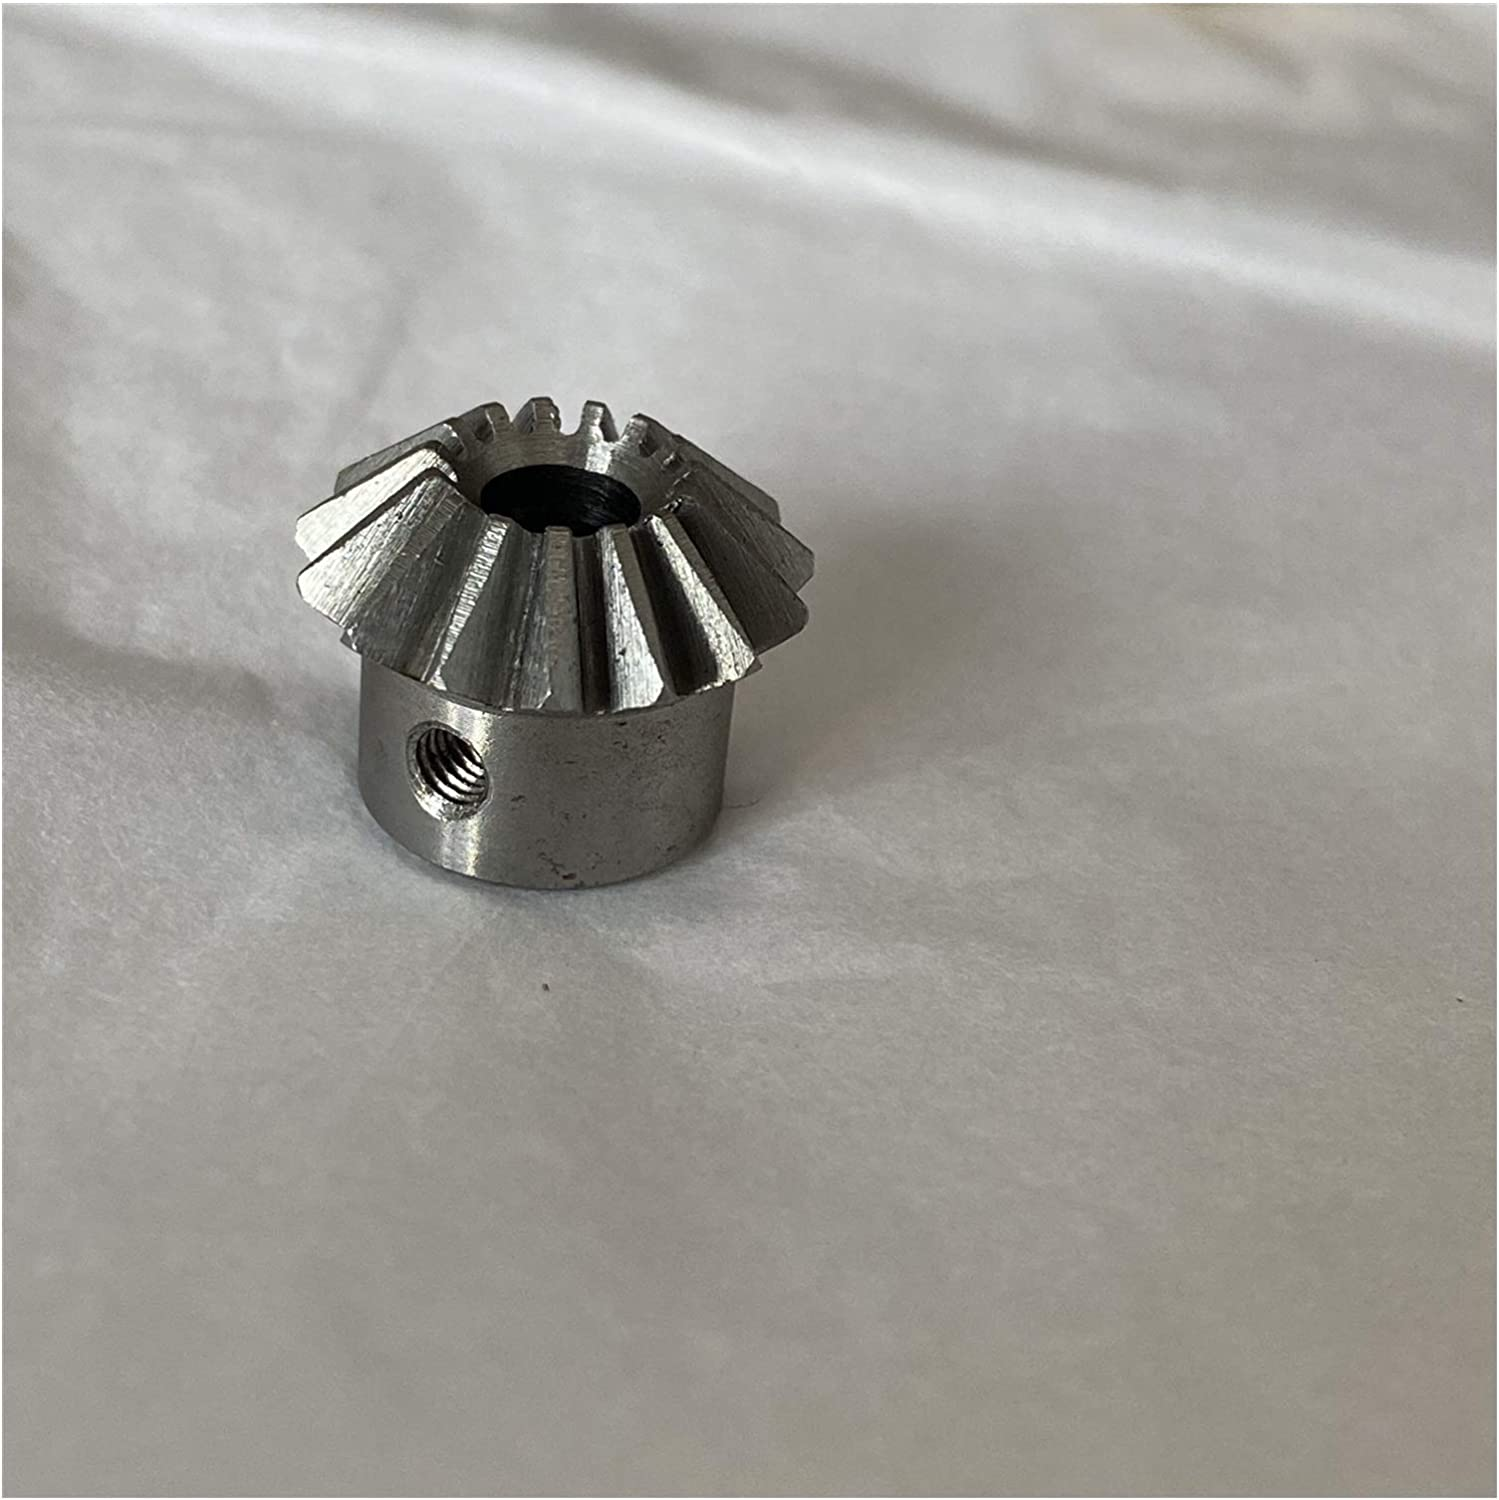 LXIAOBO-G 0.8M 15T Pinions 1:1 Bevel Mail order Elegant Steel Gear Copper Carbon 3